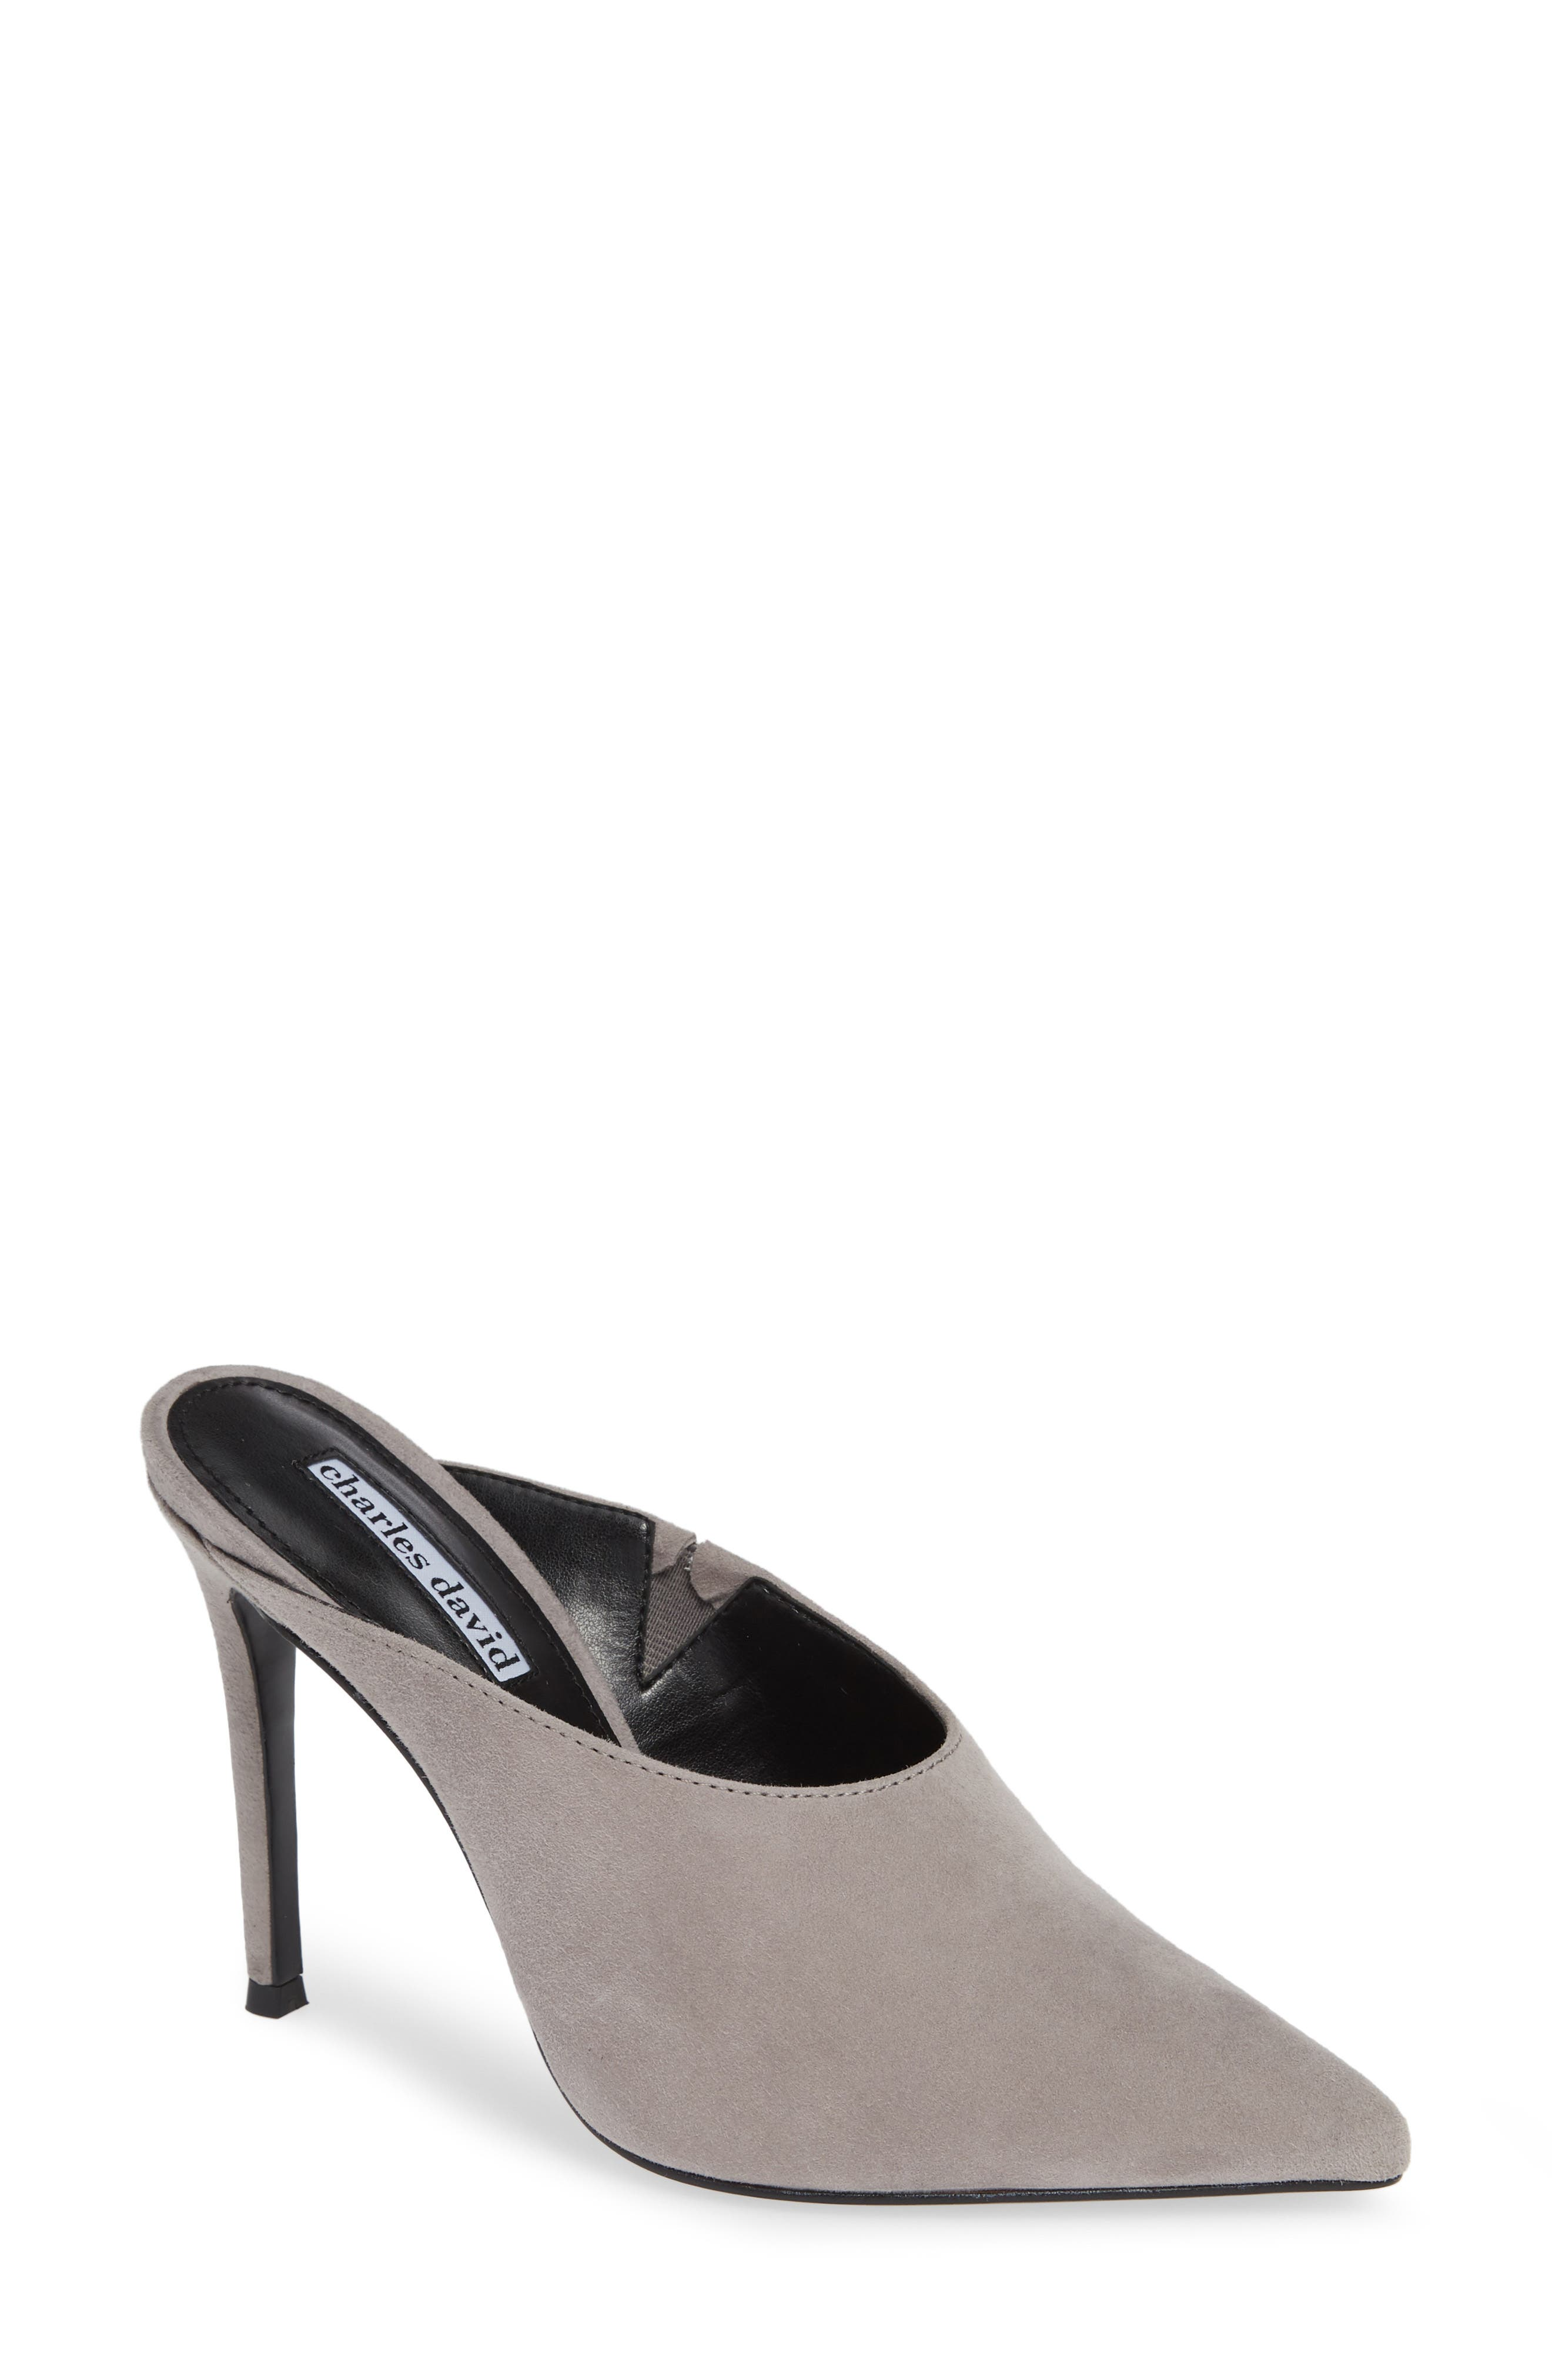 CHARLES DAVID Women'S Carlyle Pointed Toe Suede High-Heel Mules in Grey Suede